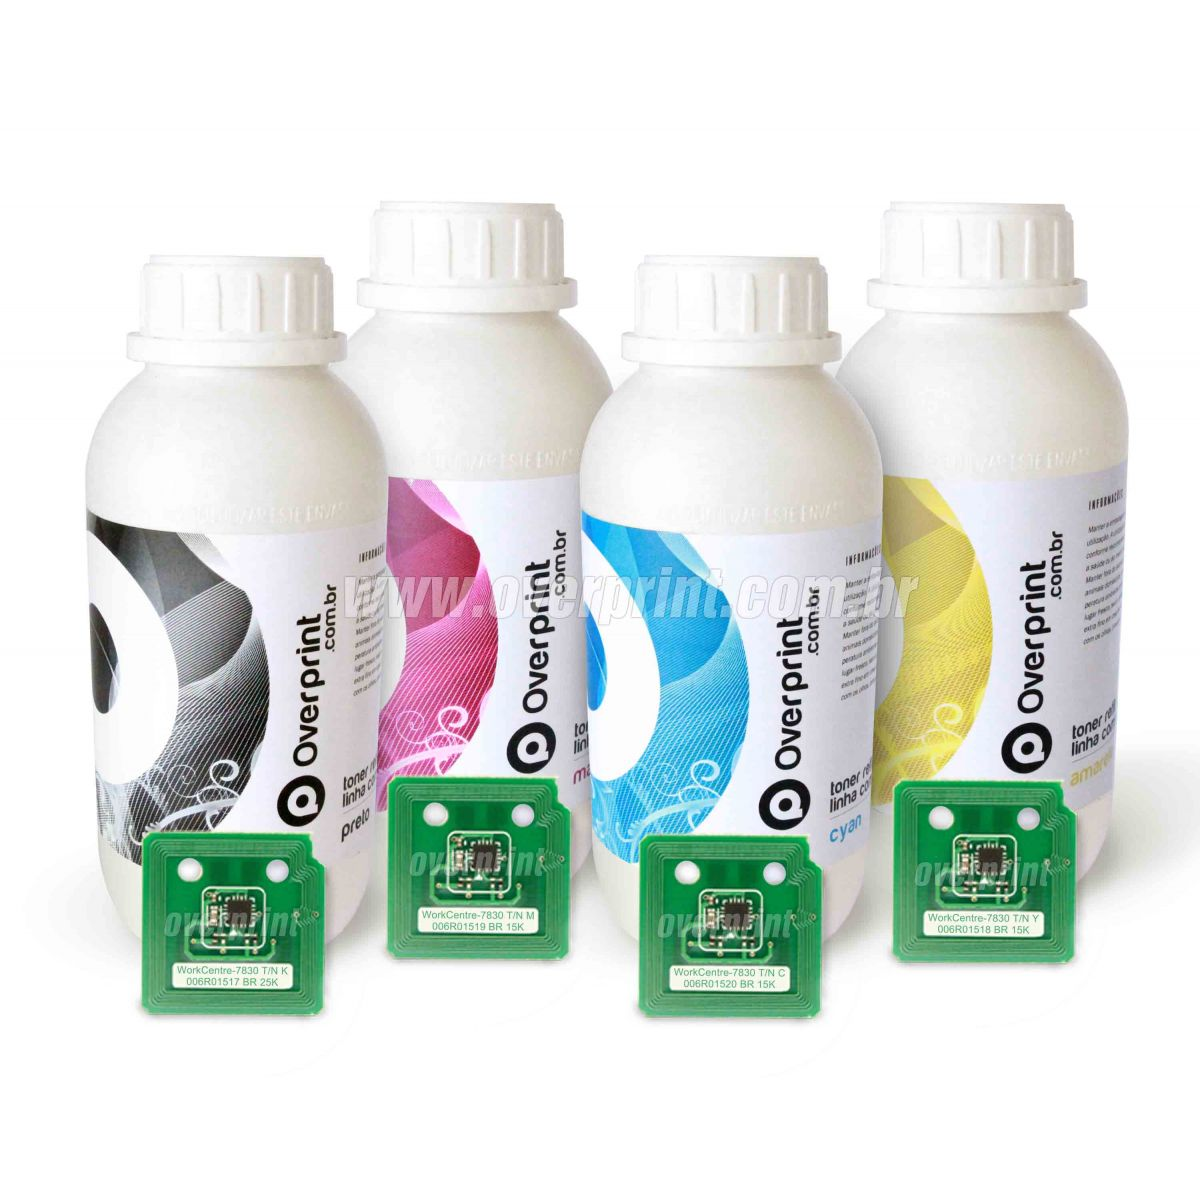 Kit Refil de Toner 4 cores + 4 Chips Xerox WorkCentre 7830/7835/7845/7855 - Overprint